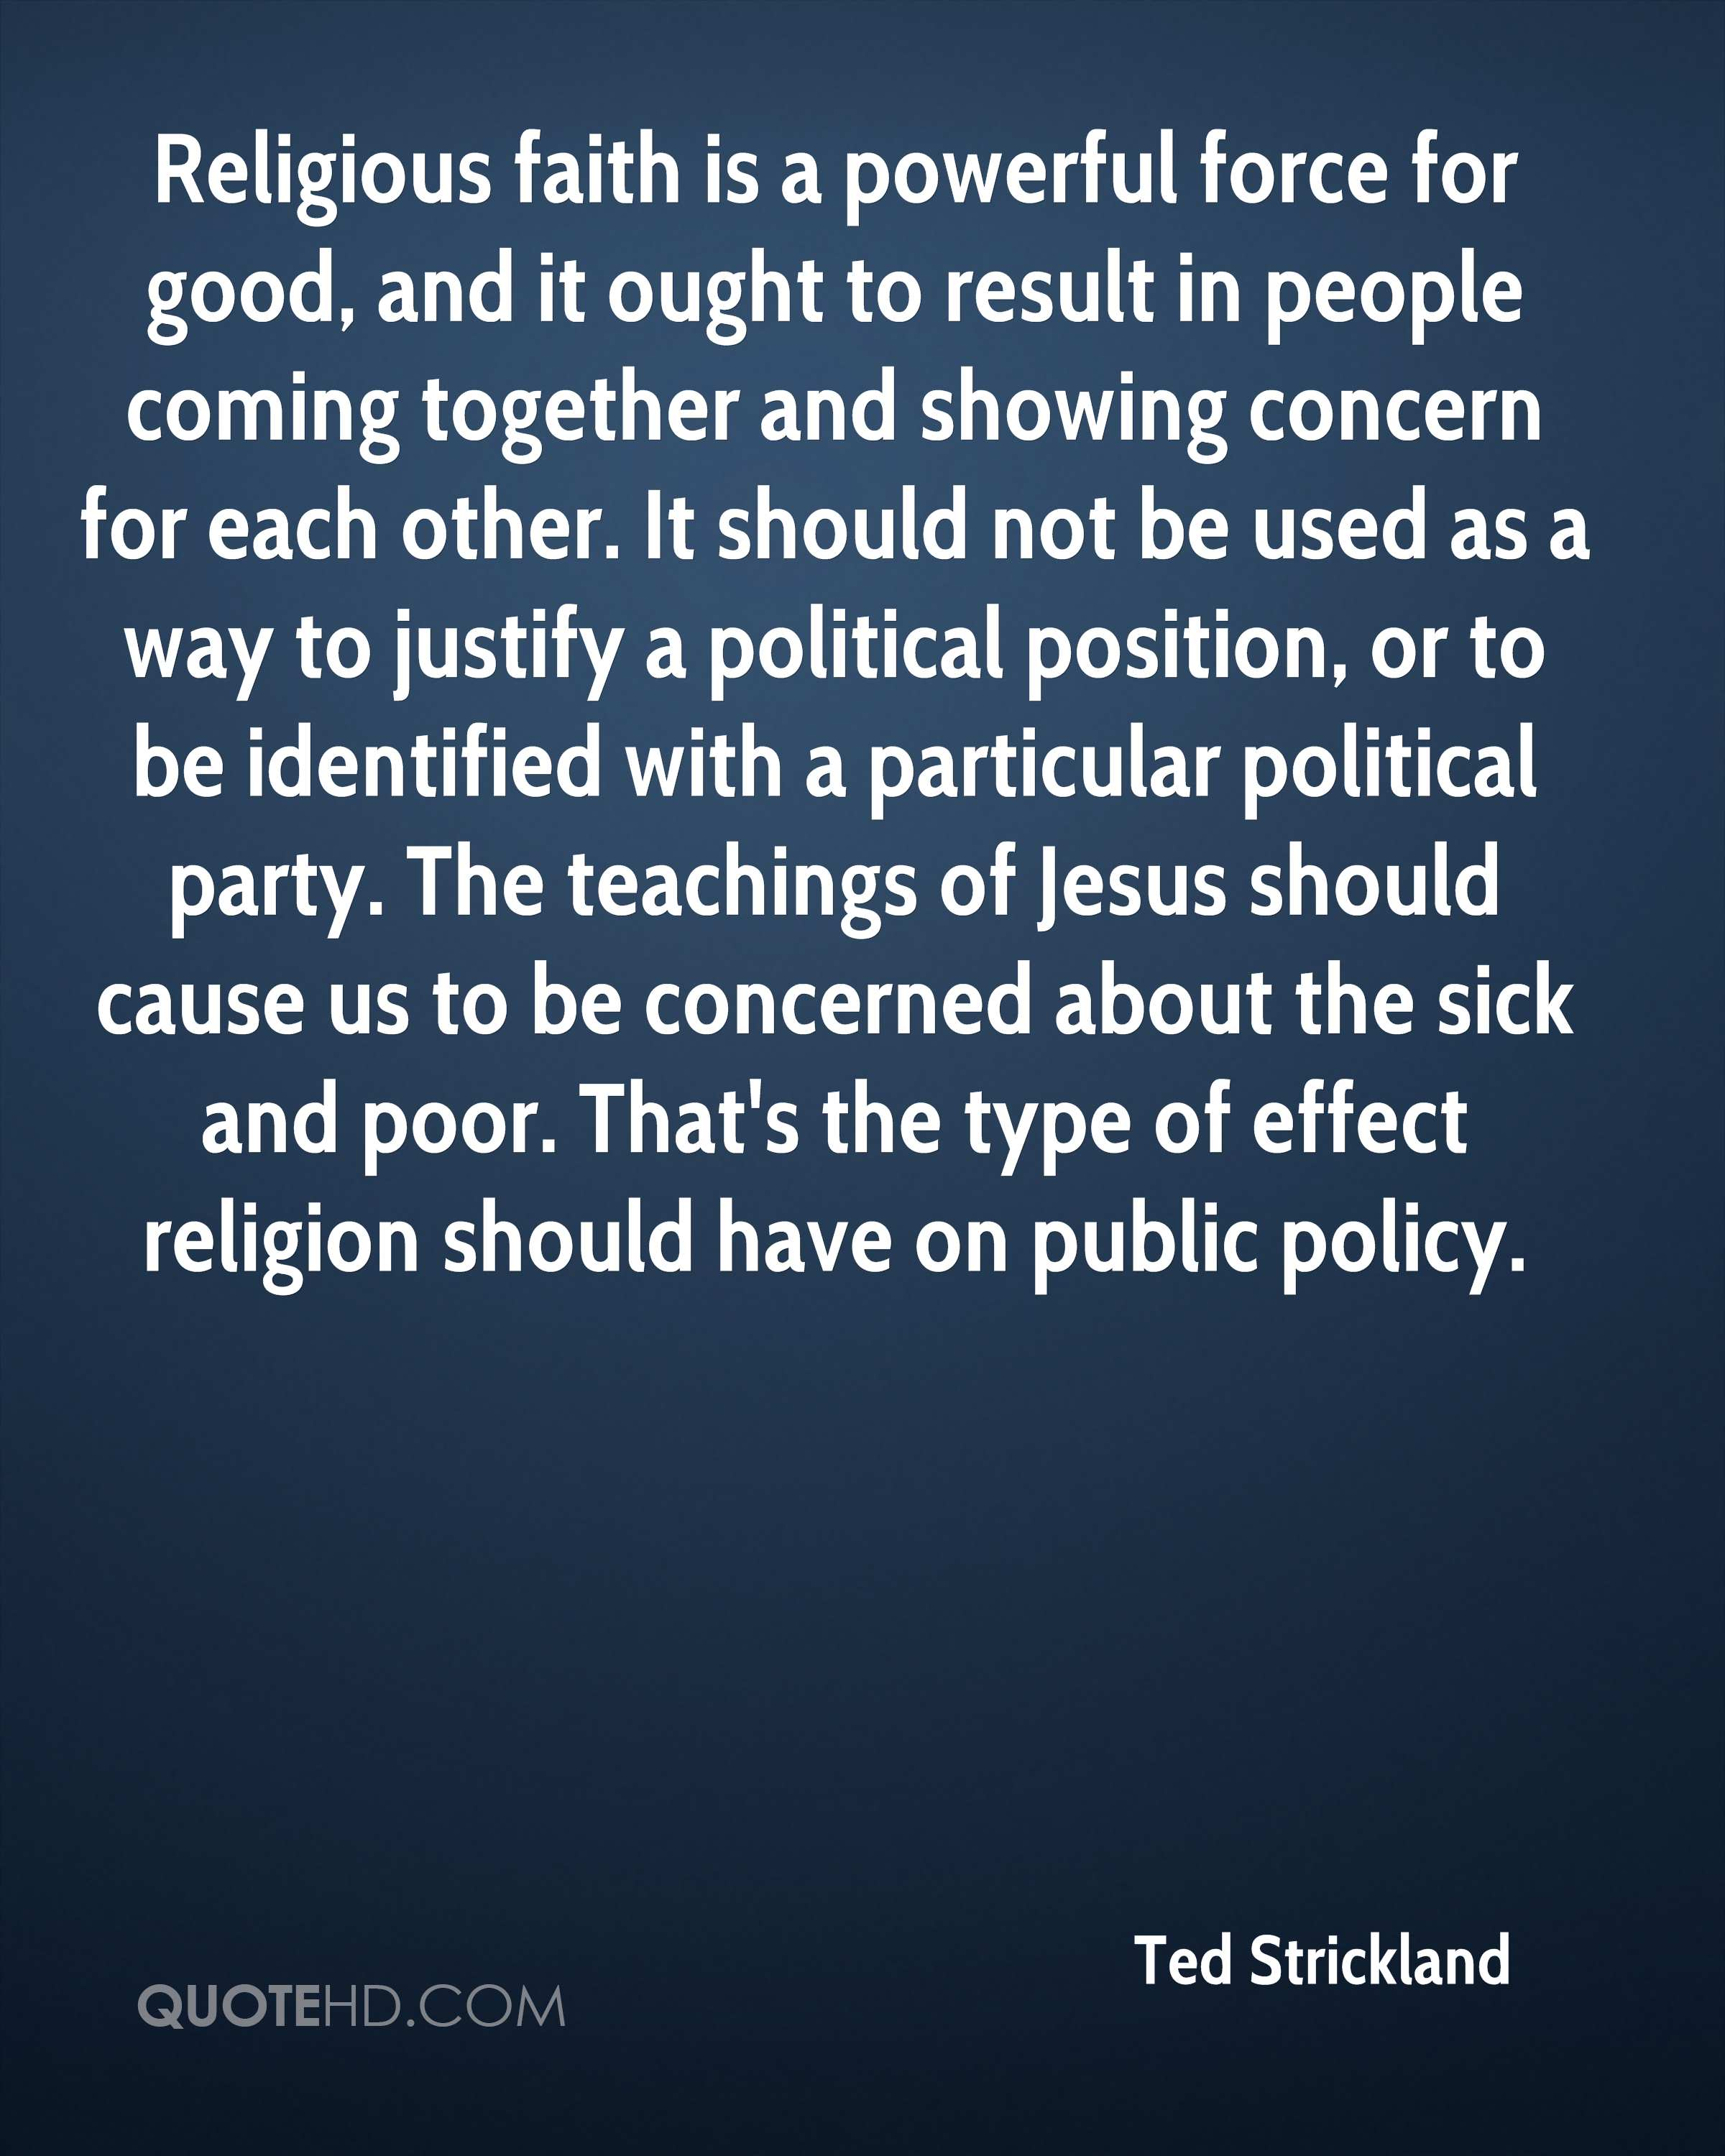 Religious Quotes About Faith Ted Strickland Faith Quotes  Quotehd